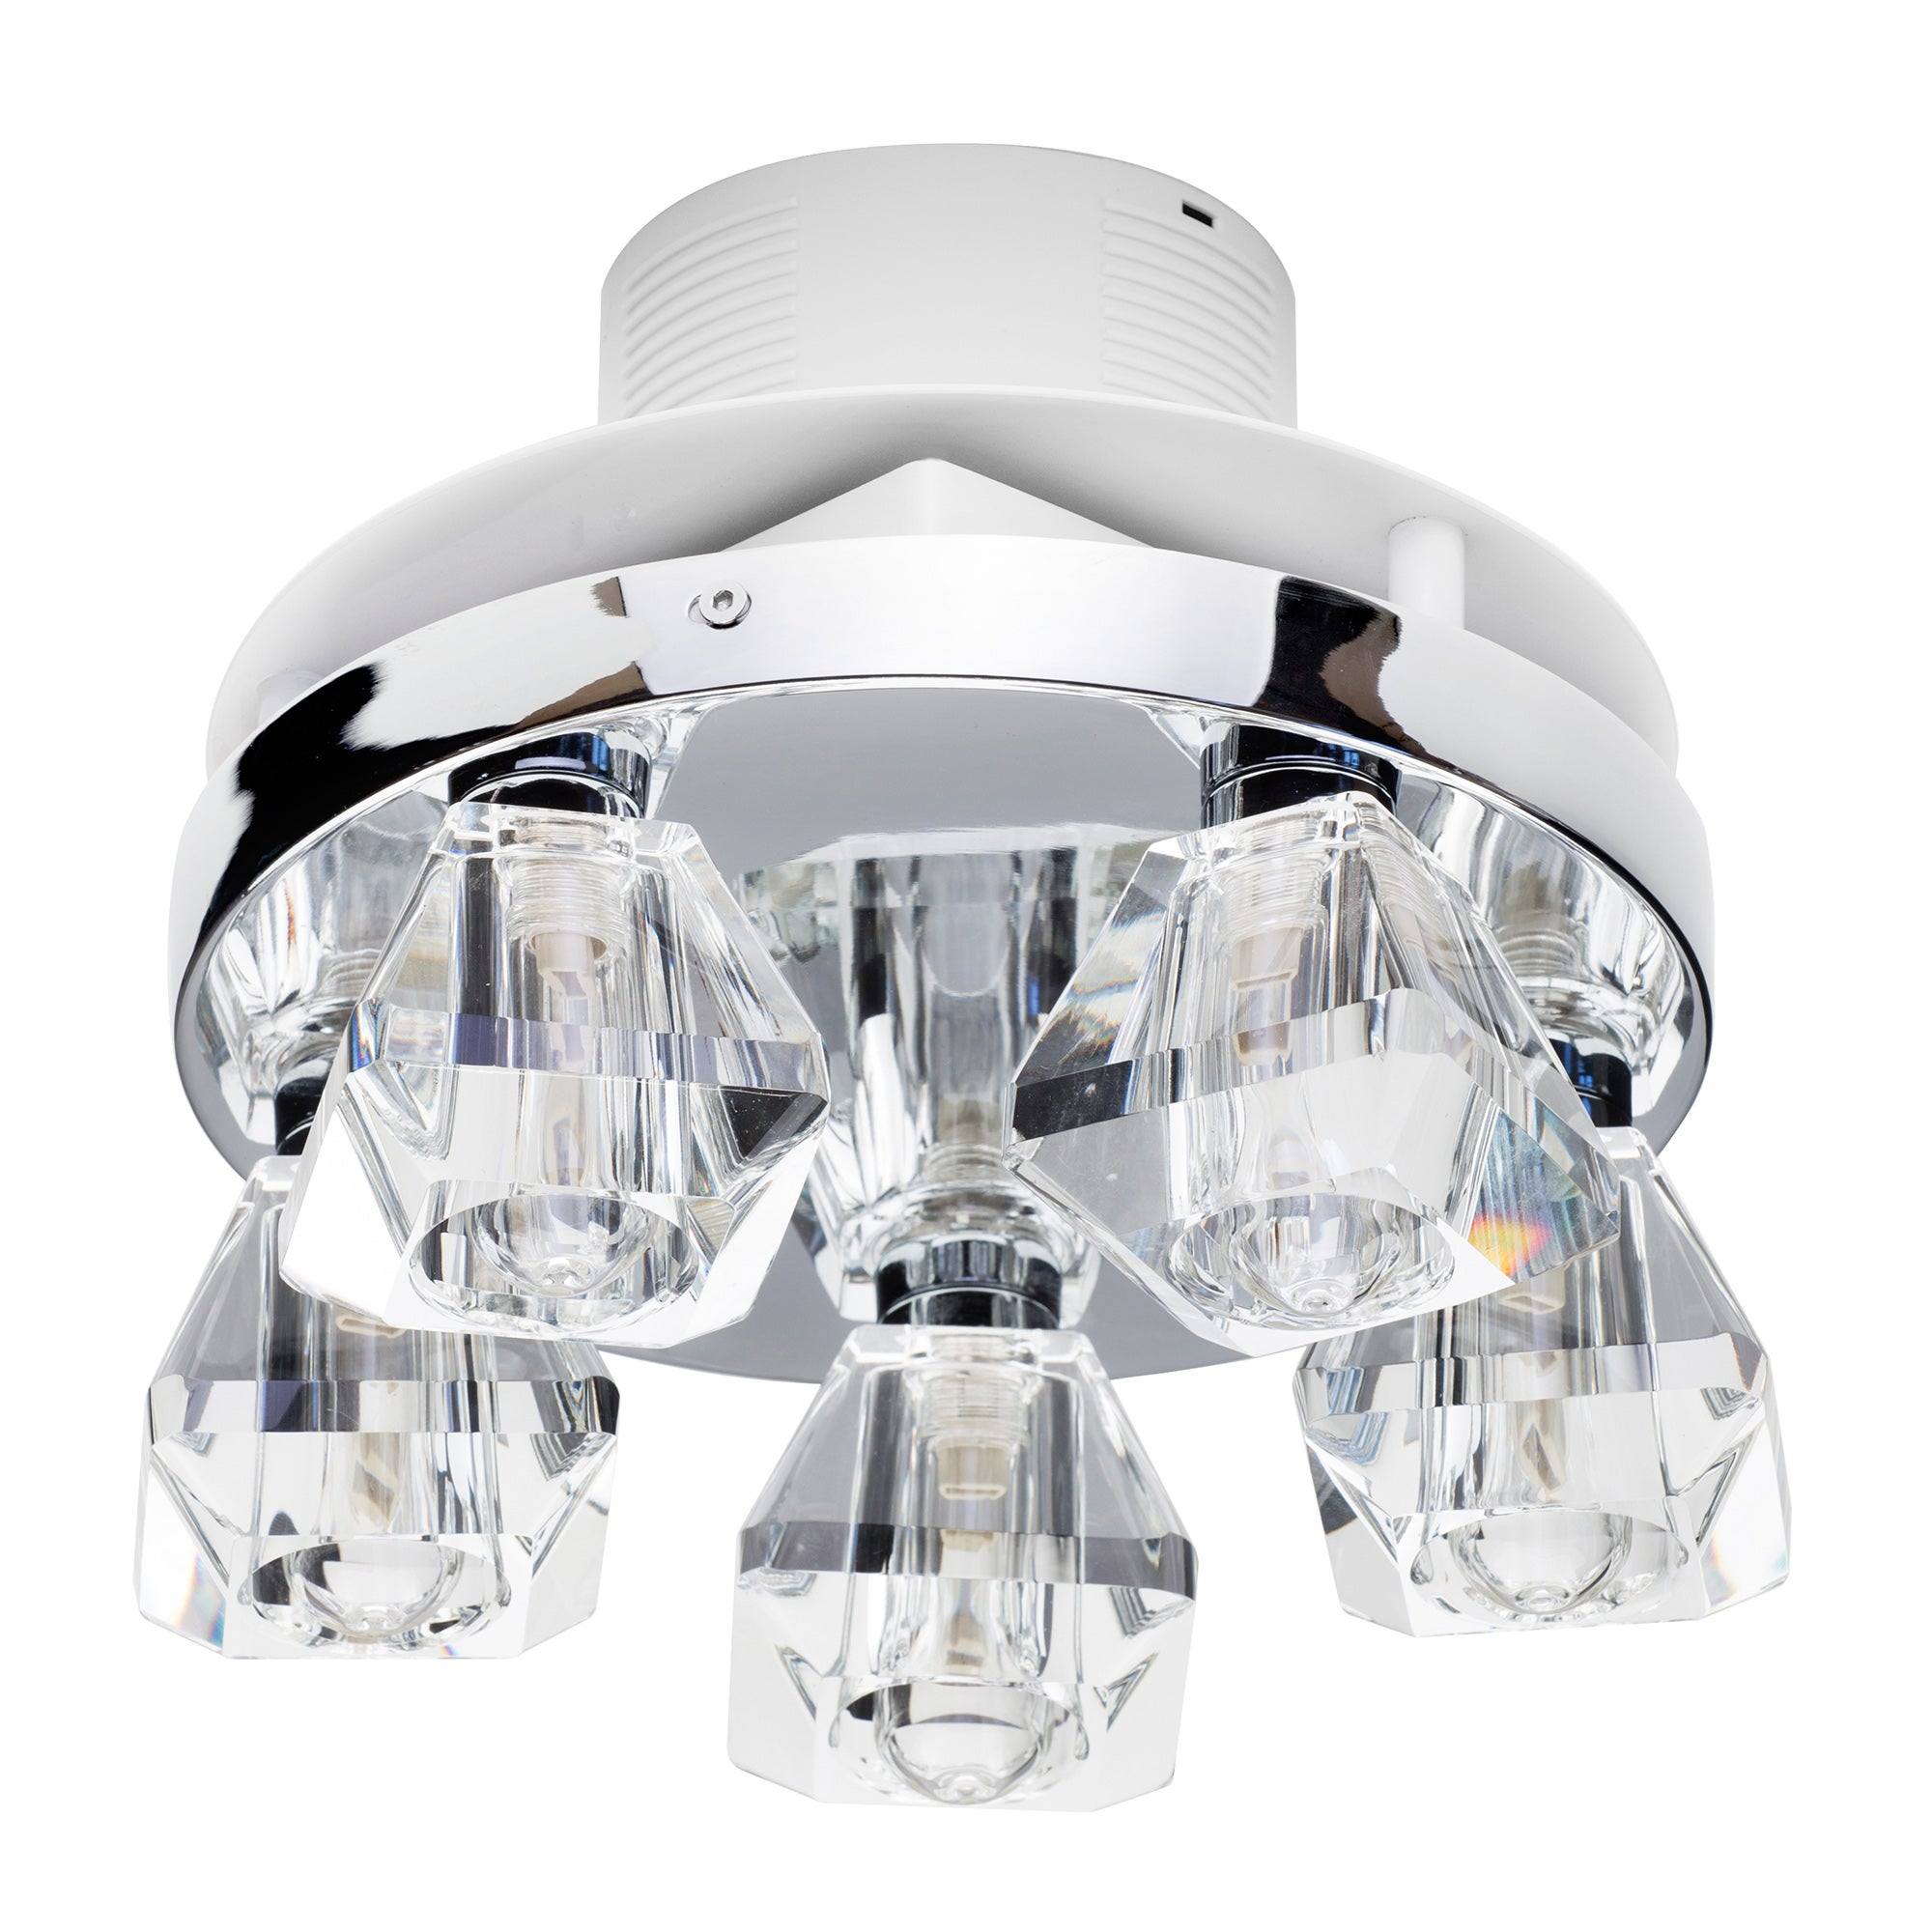 Image of Primavera 5 Light Ceiling Fitting and Extractor Fan Chrome